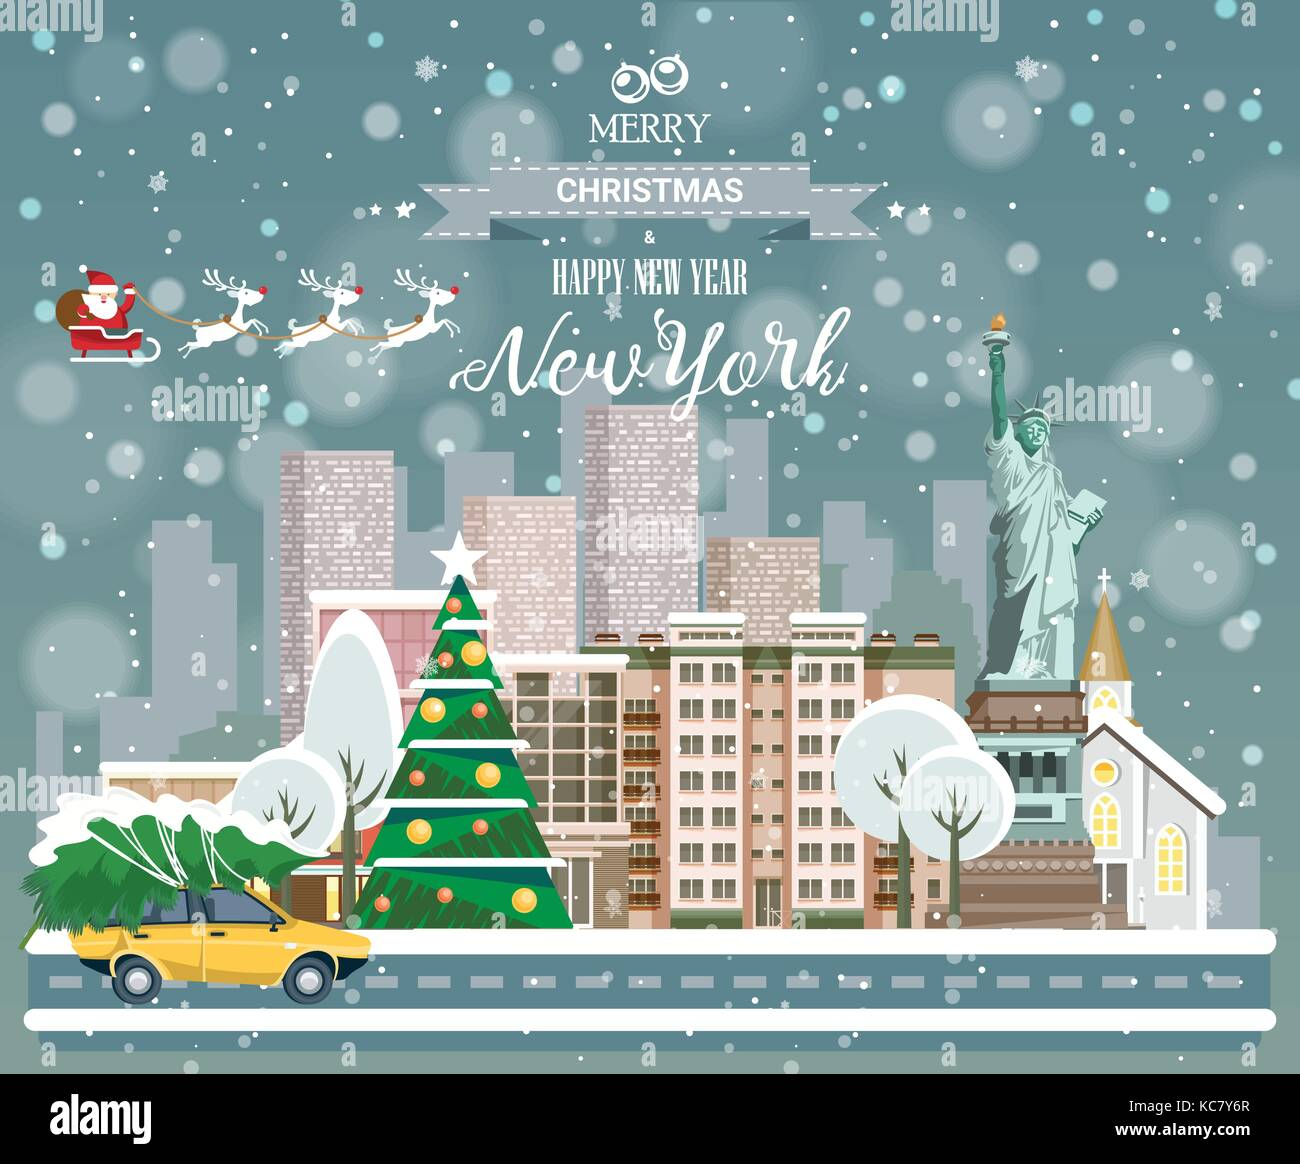 Christmas greeting card. Poster in flat style. Merry Christmas and ...